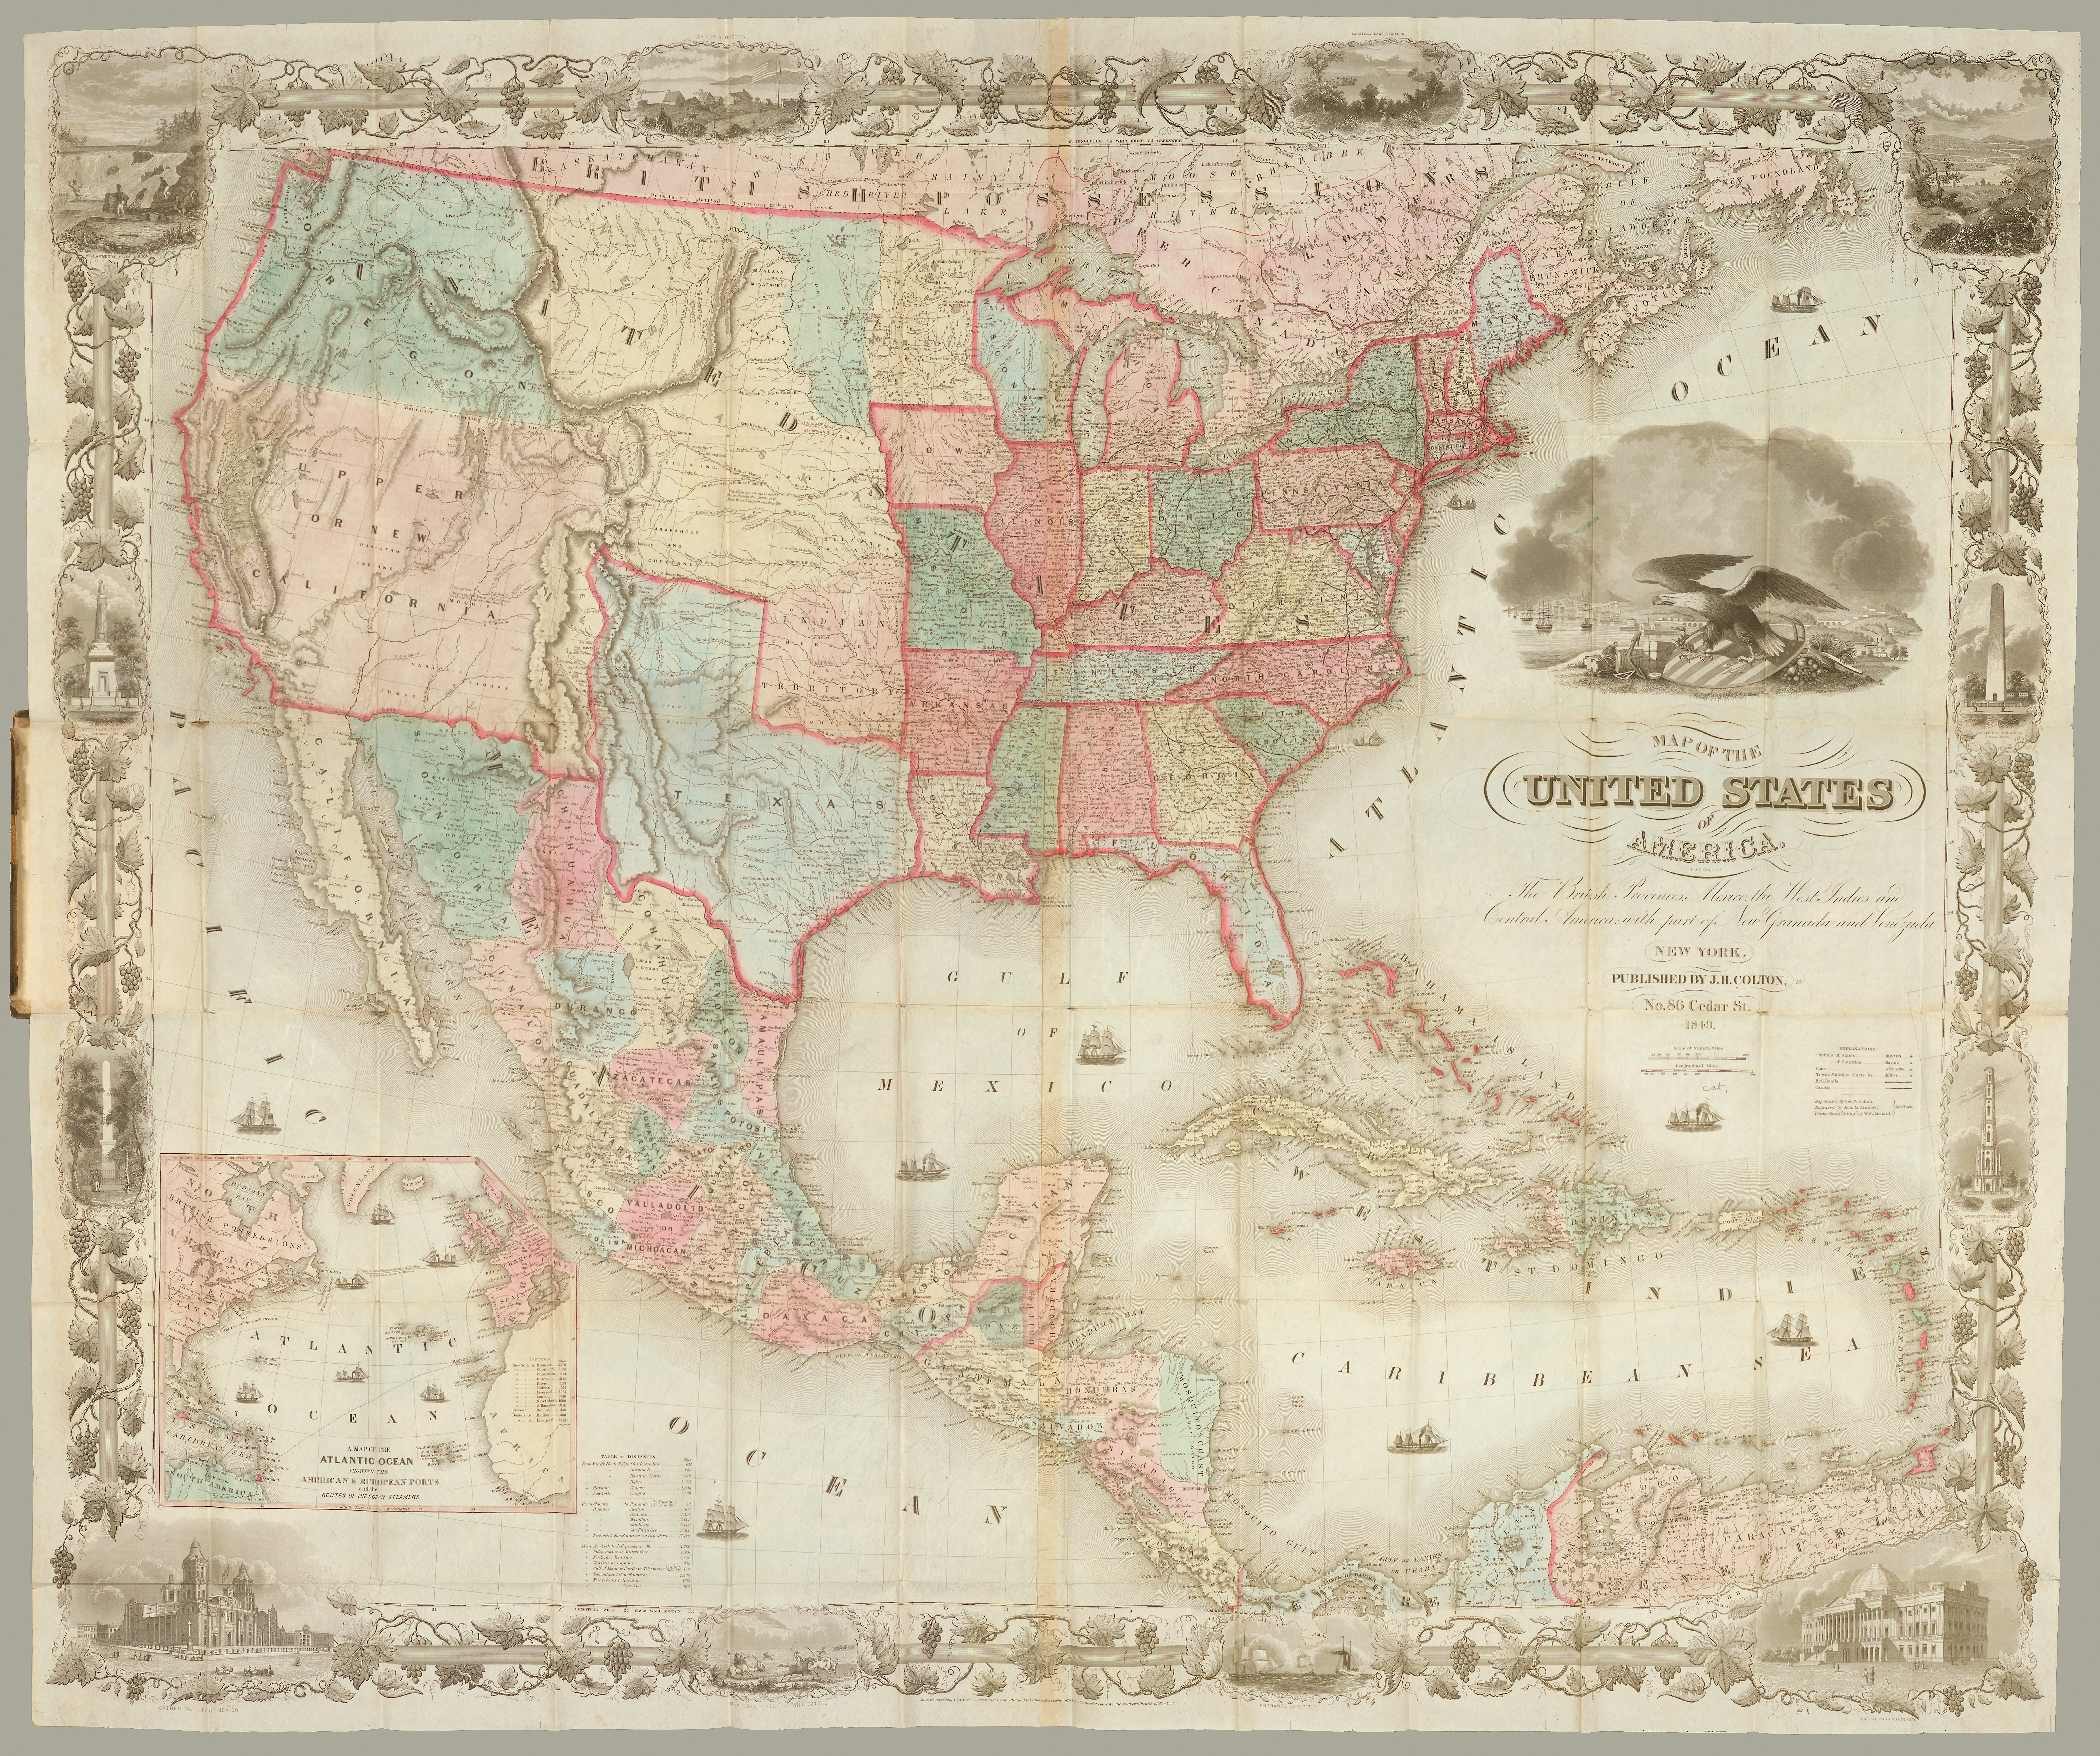 FileMap of the United States of America the British provinces